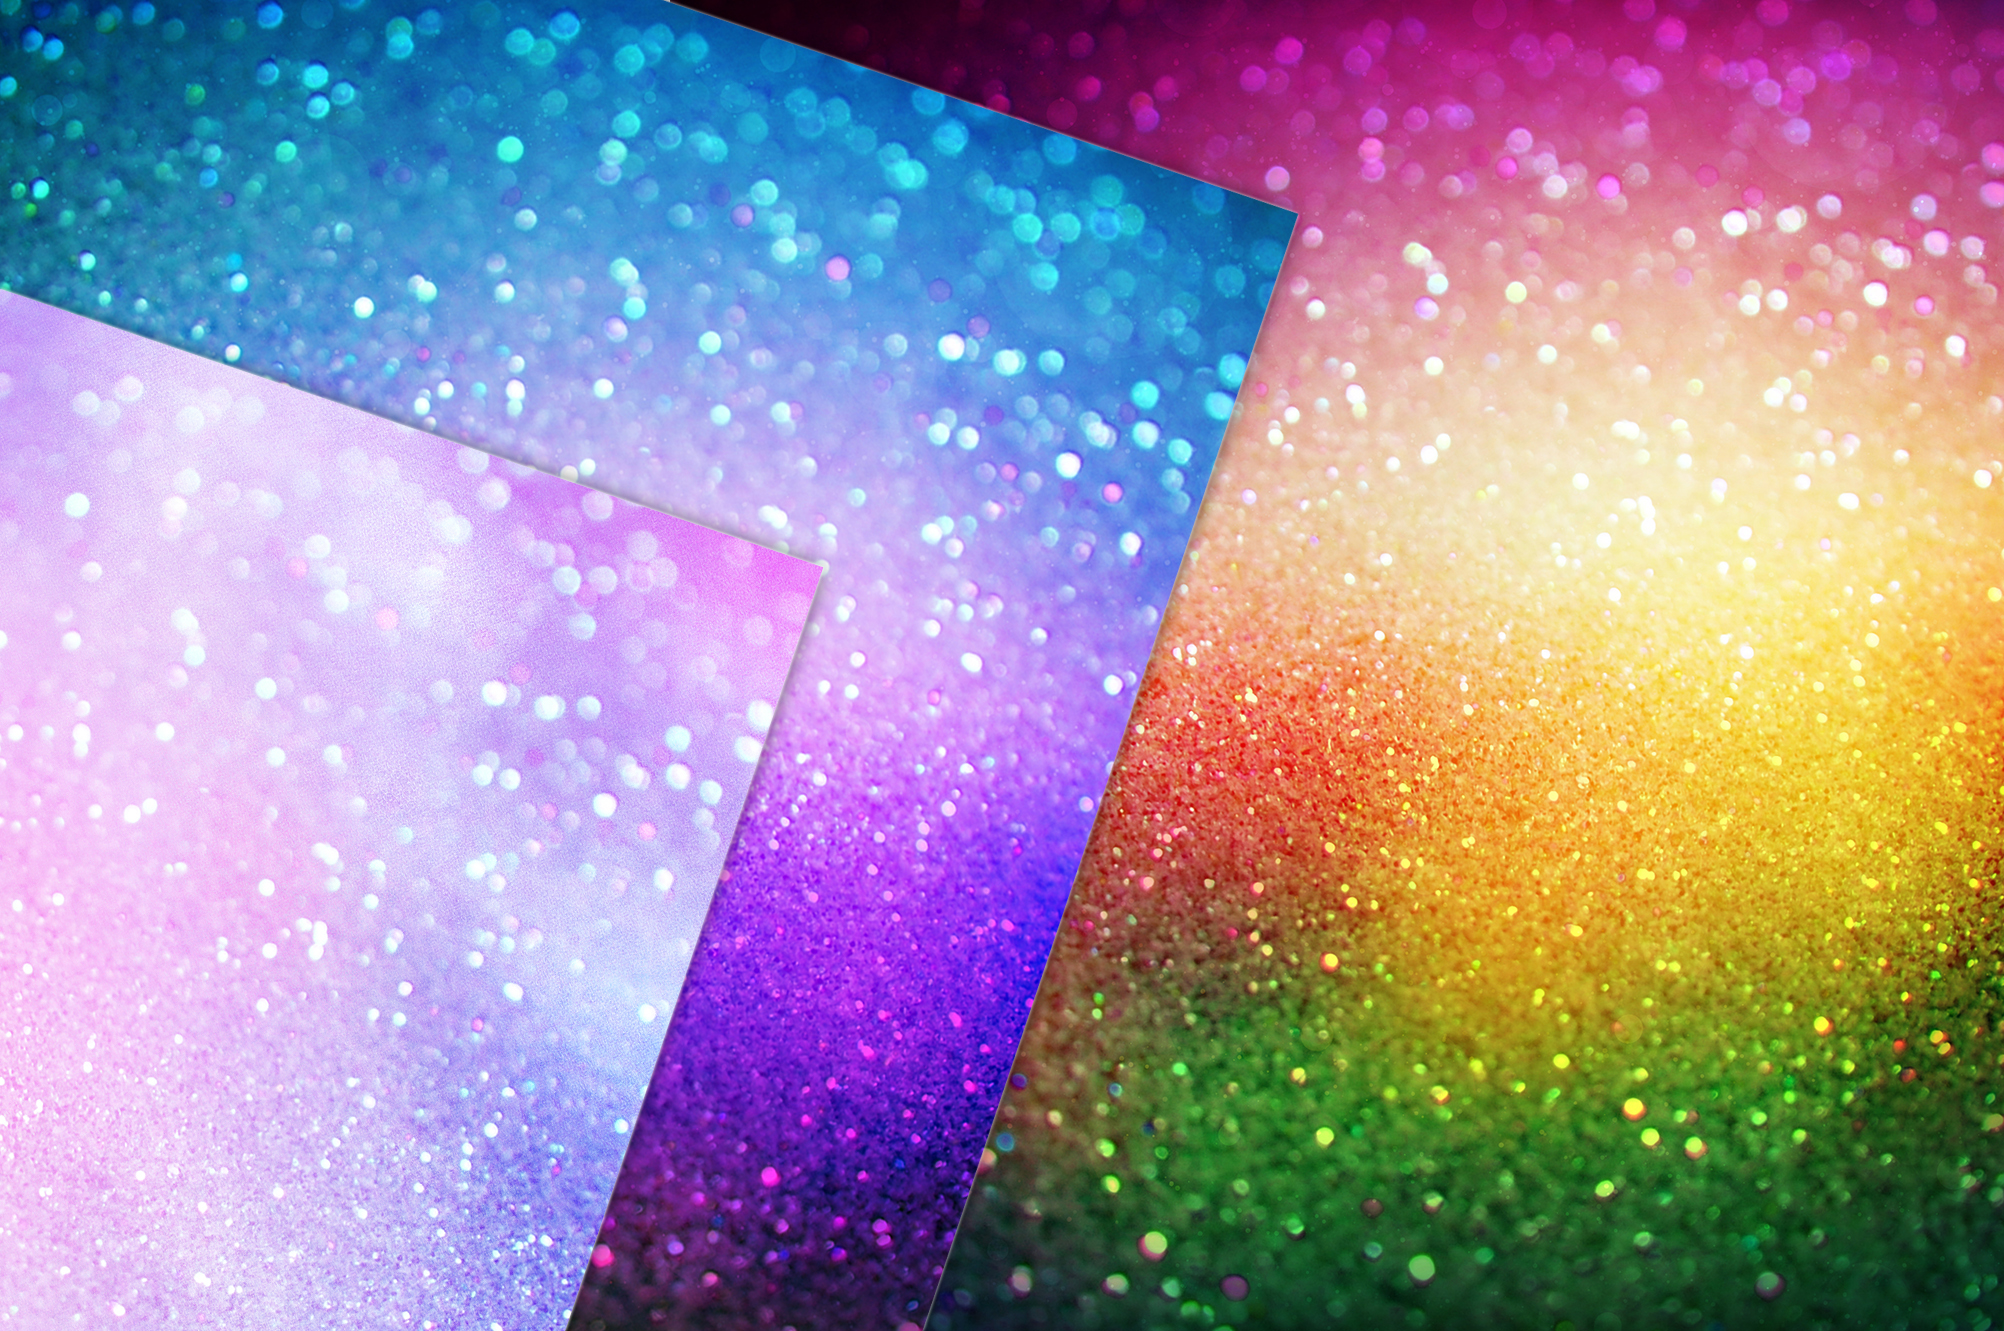 Iridescent 95 Glitter Textures Holographic Backgrounds example image 13